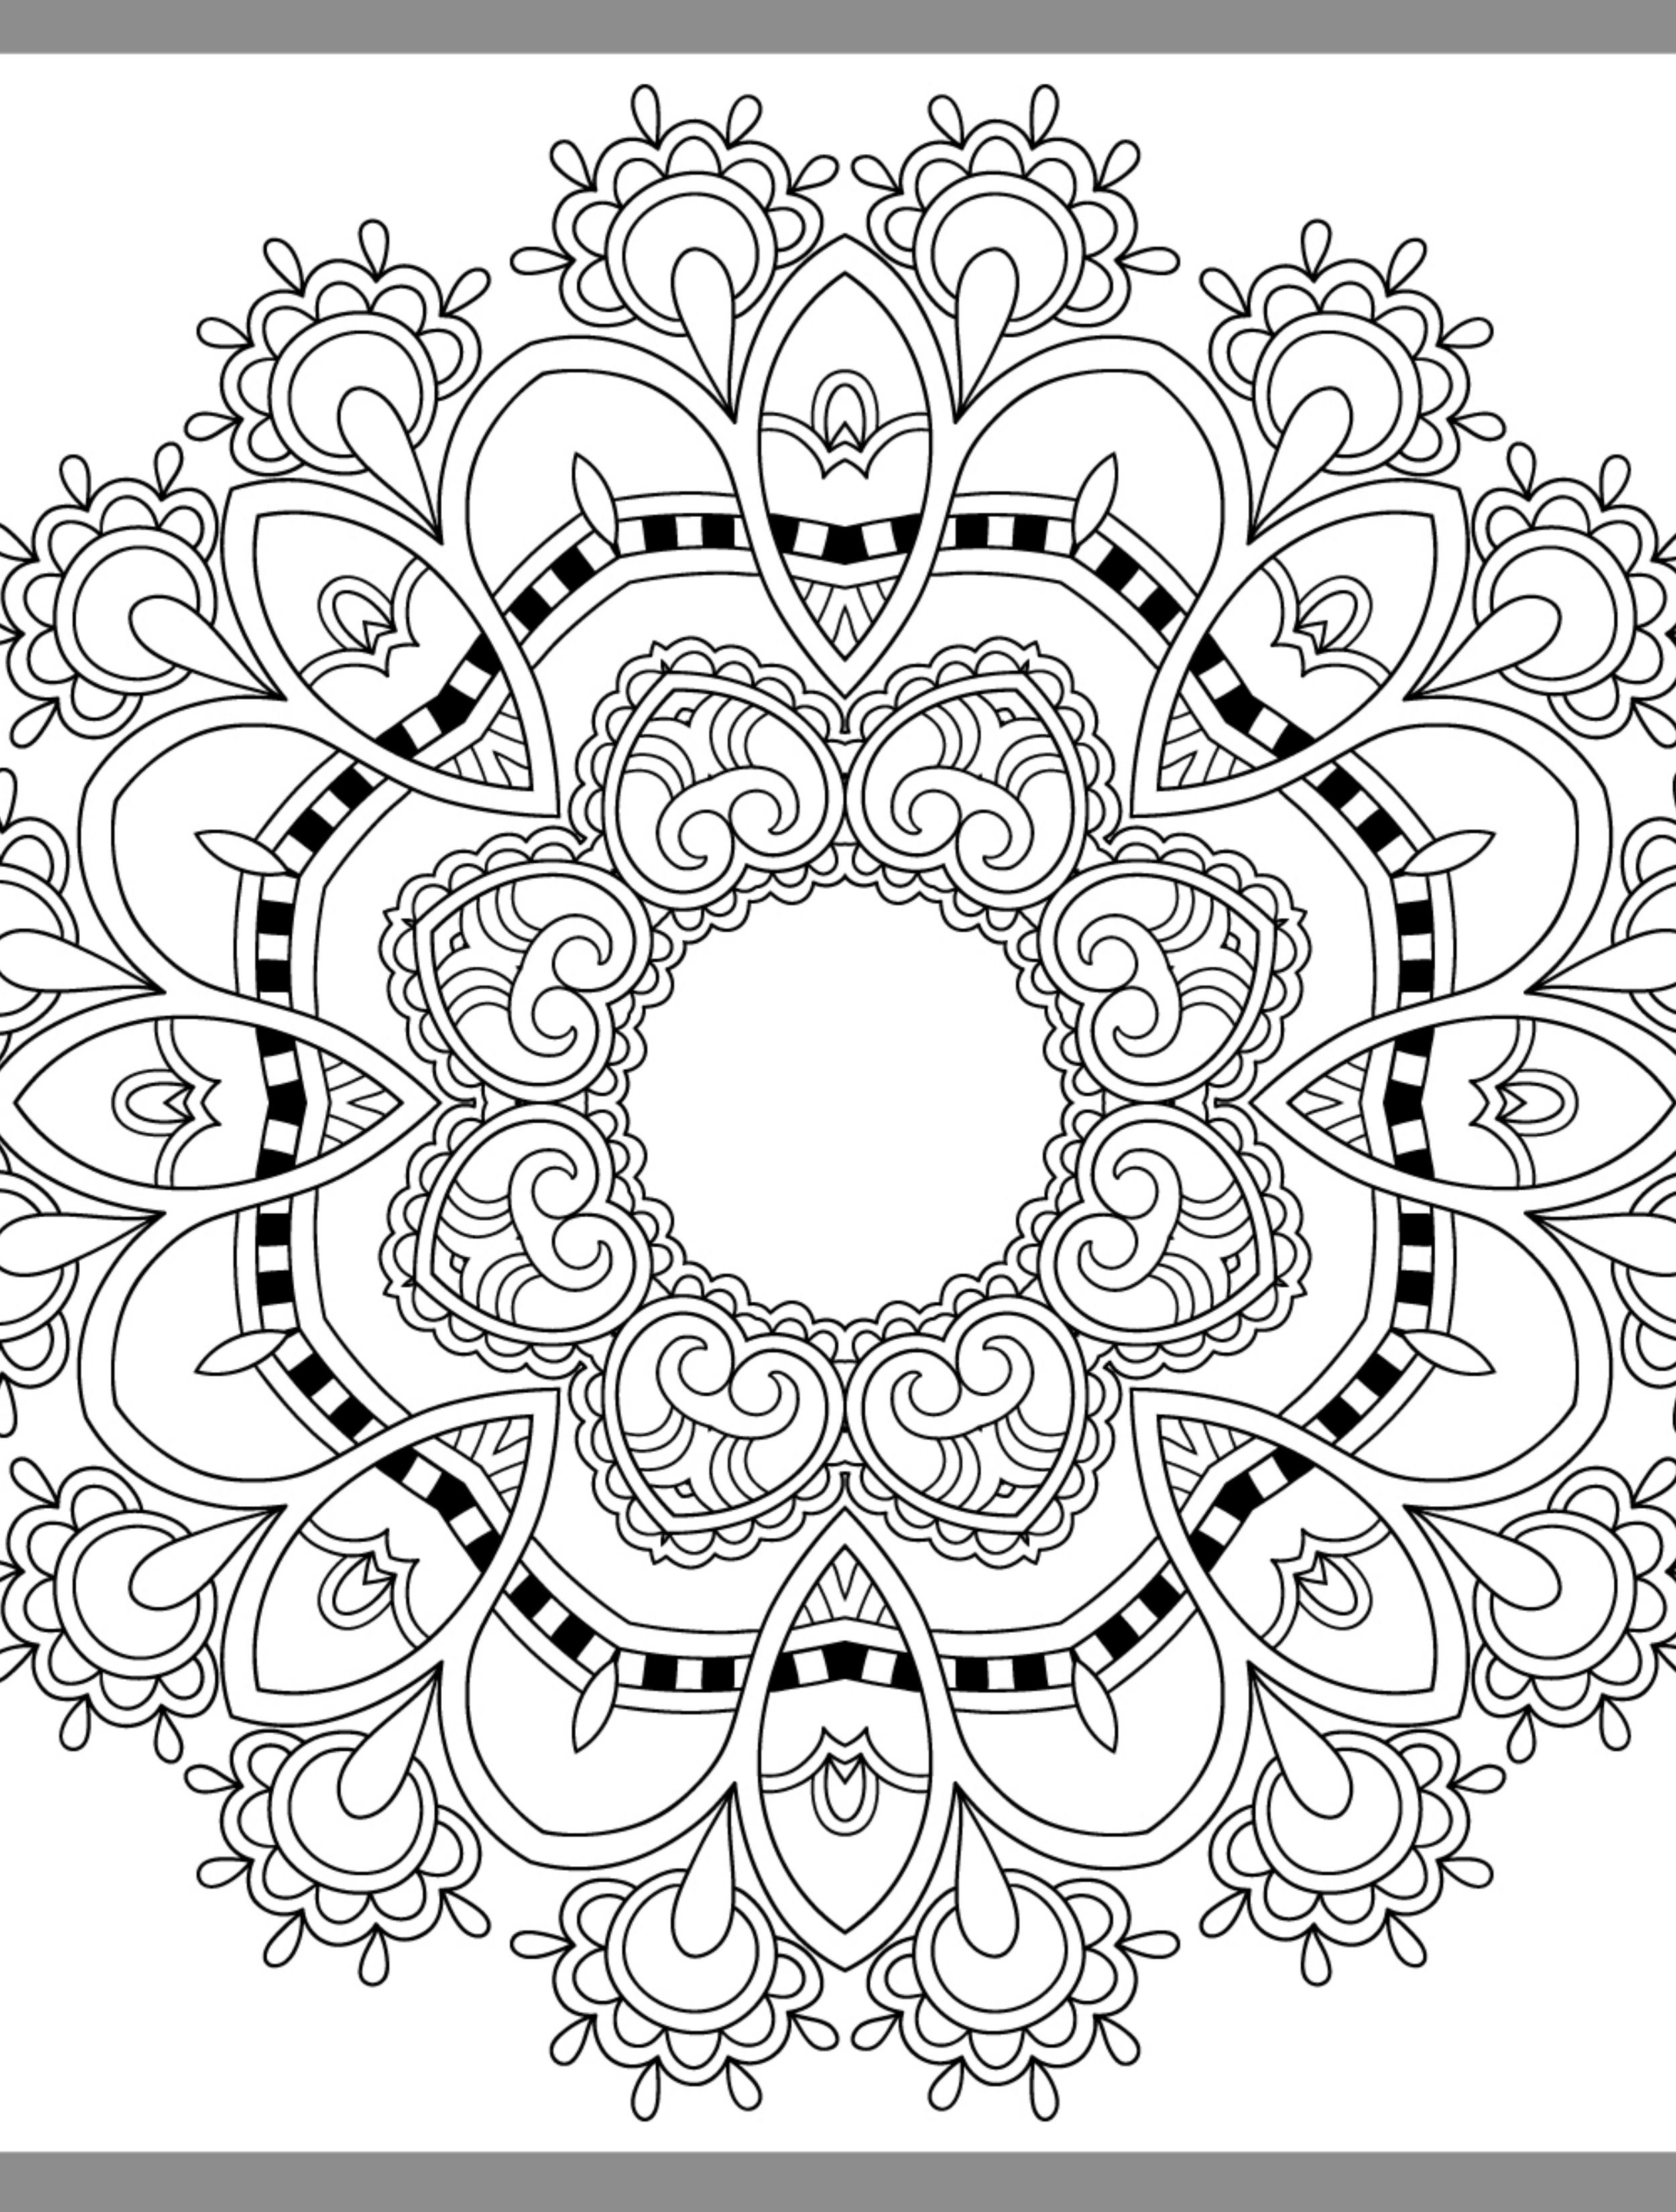 tween coloring pages coloring pages for tween girls pages coloring tween